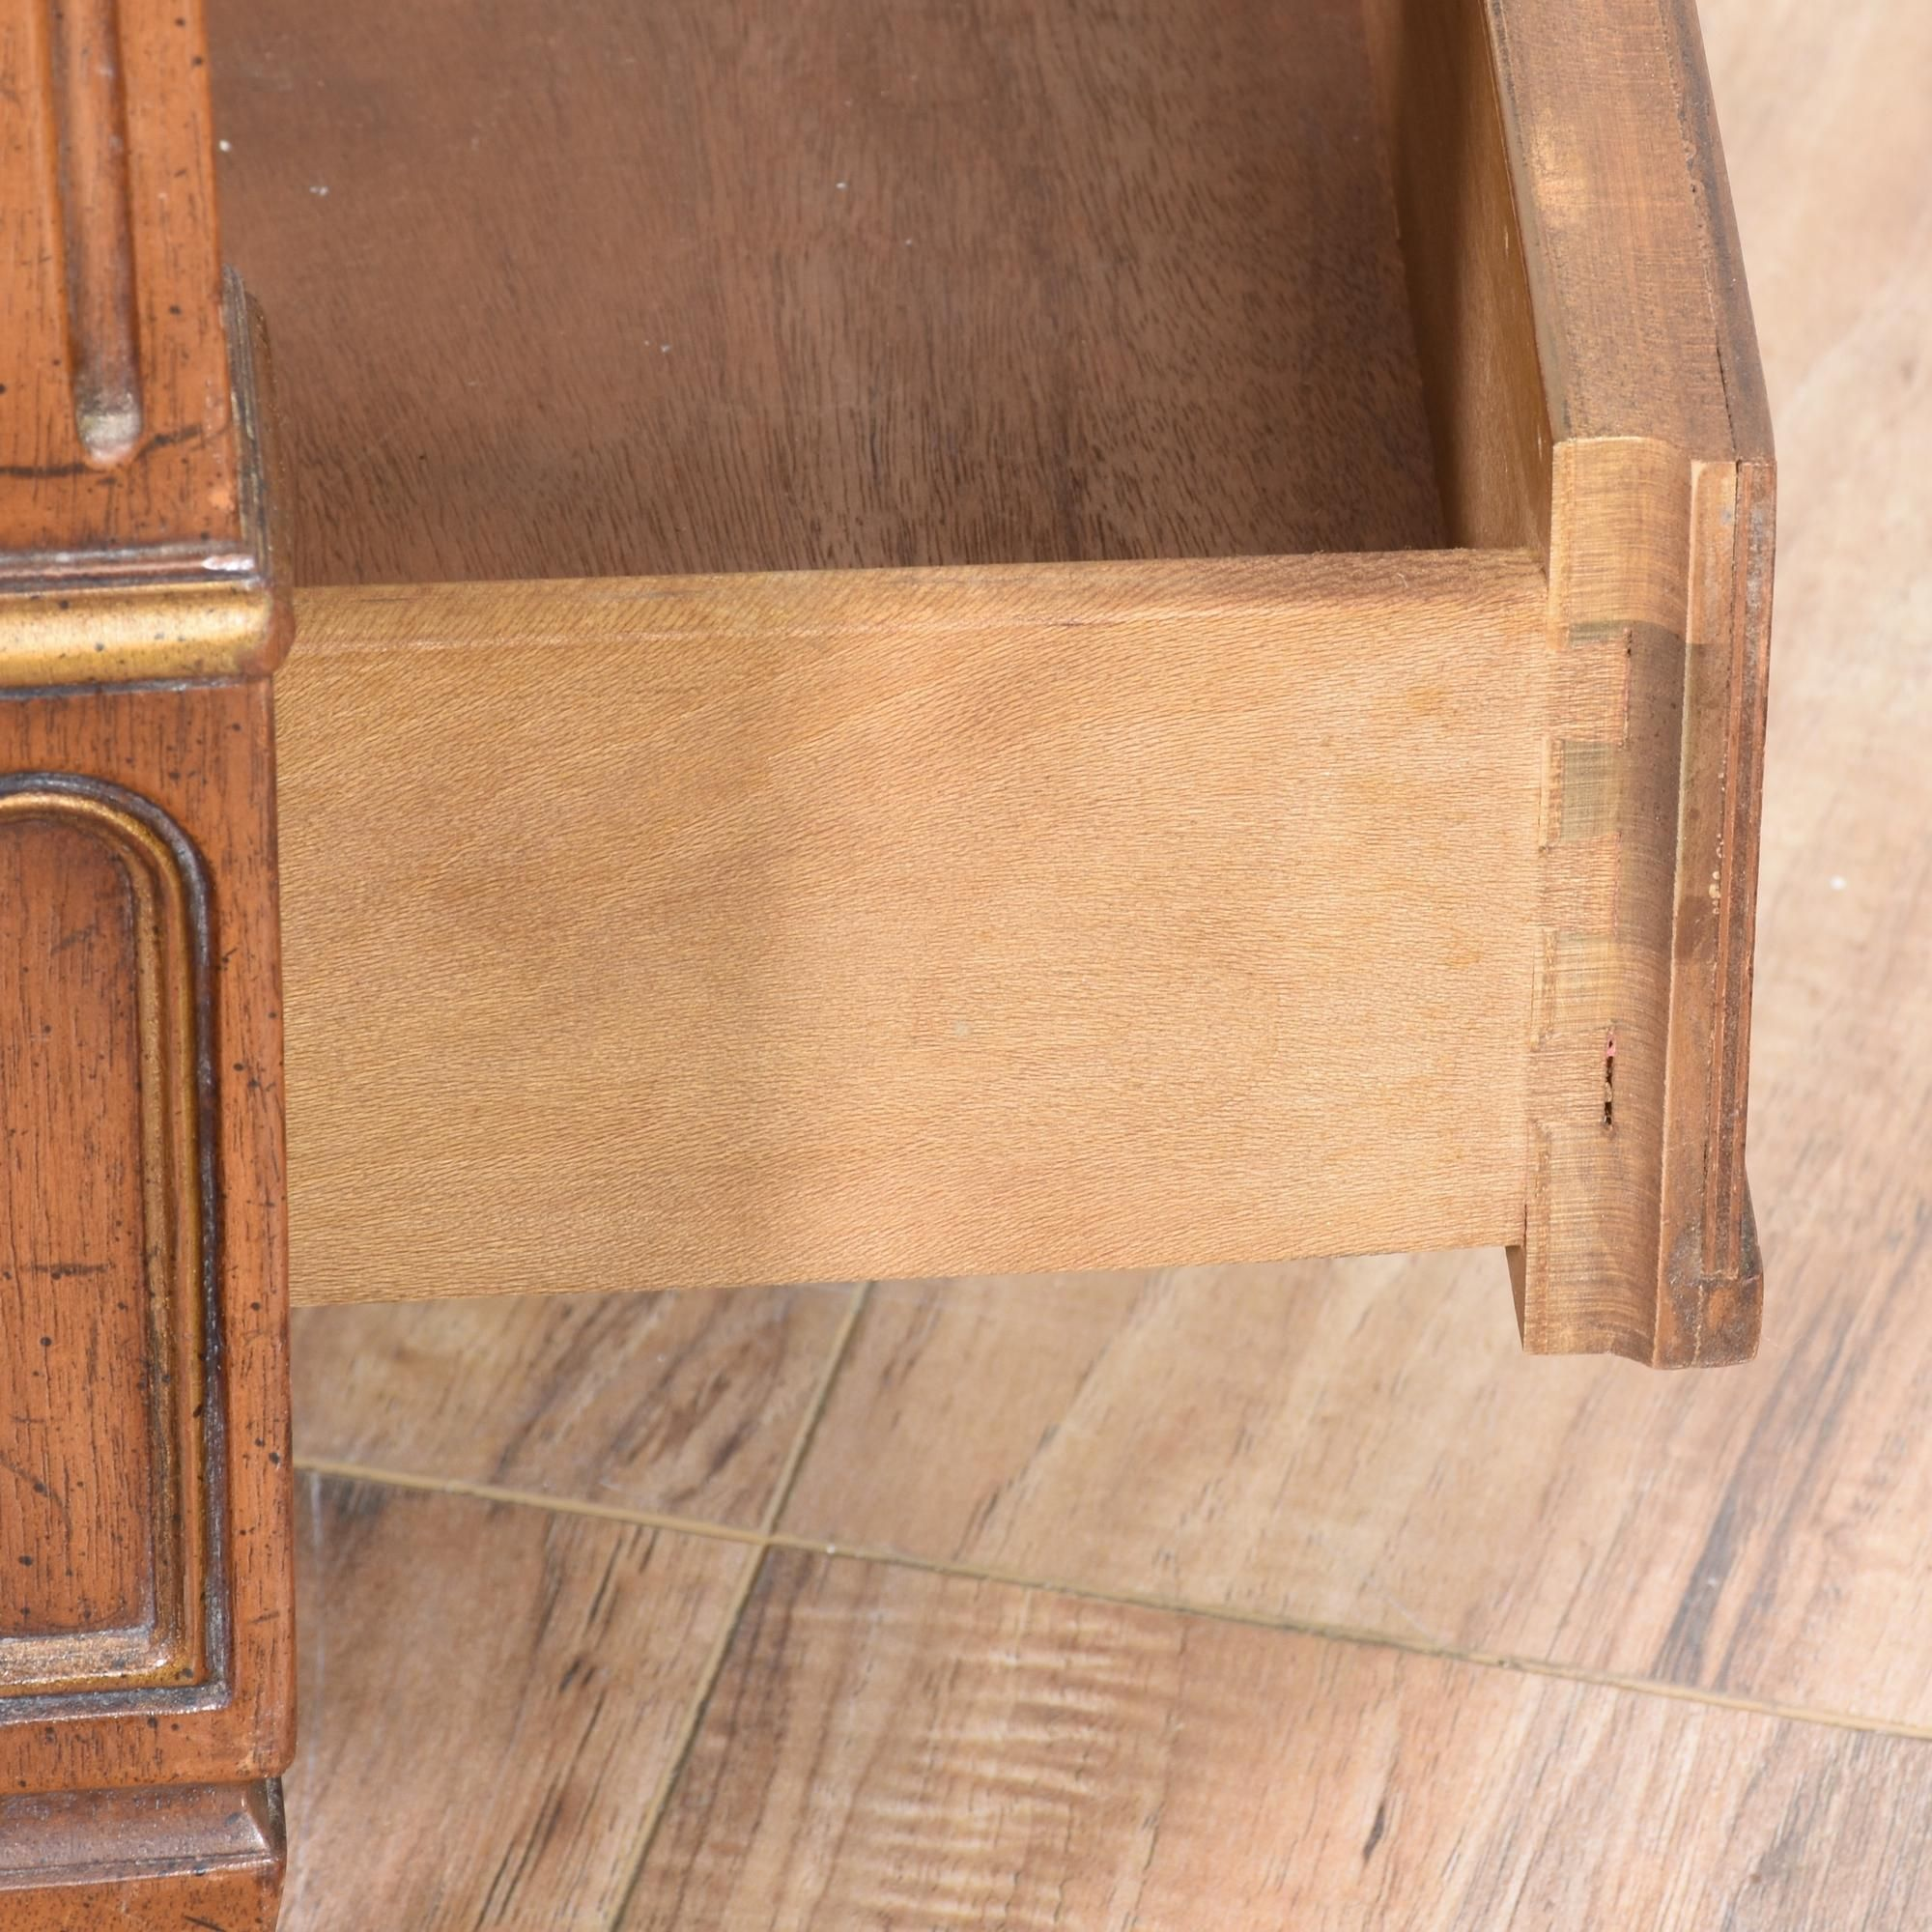 this henredon side table is featured in a solid wood with a burl